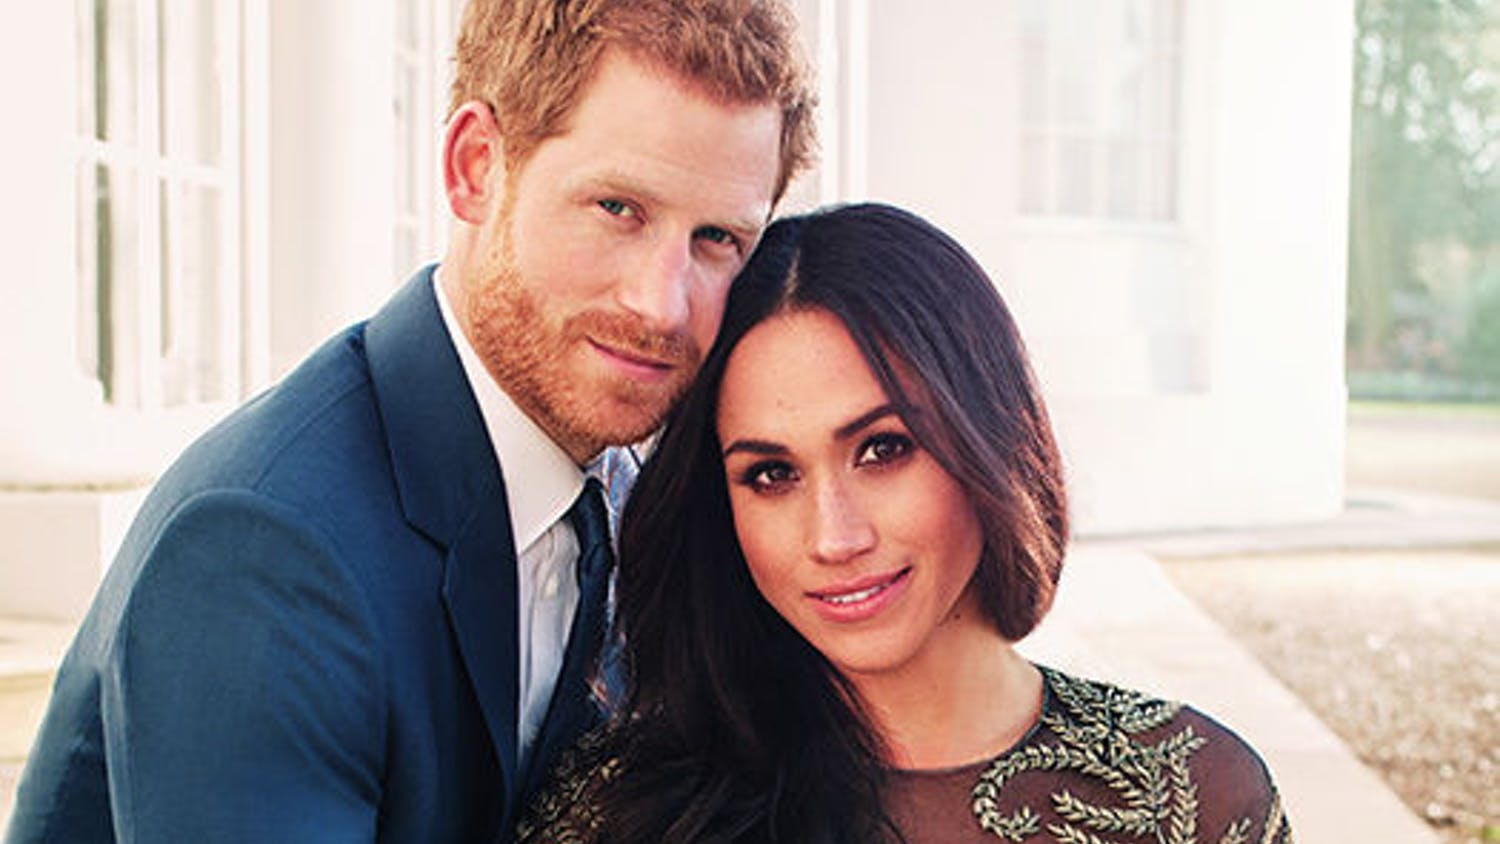 Prince Harry and Meghan Markle pose for an official engagement photo at Frogmore House, in Windsor, England.